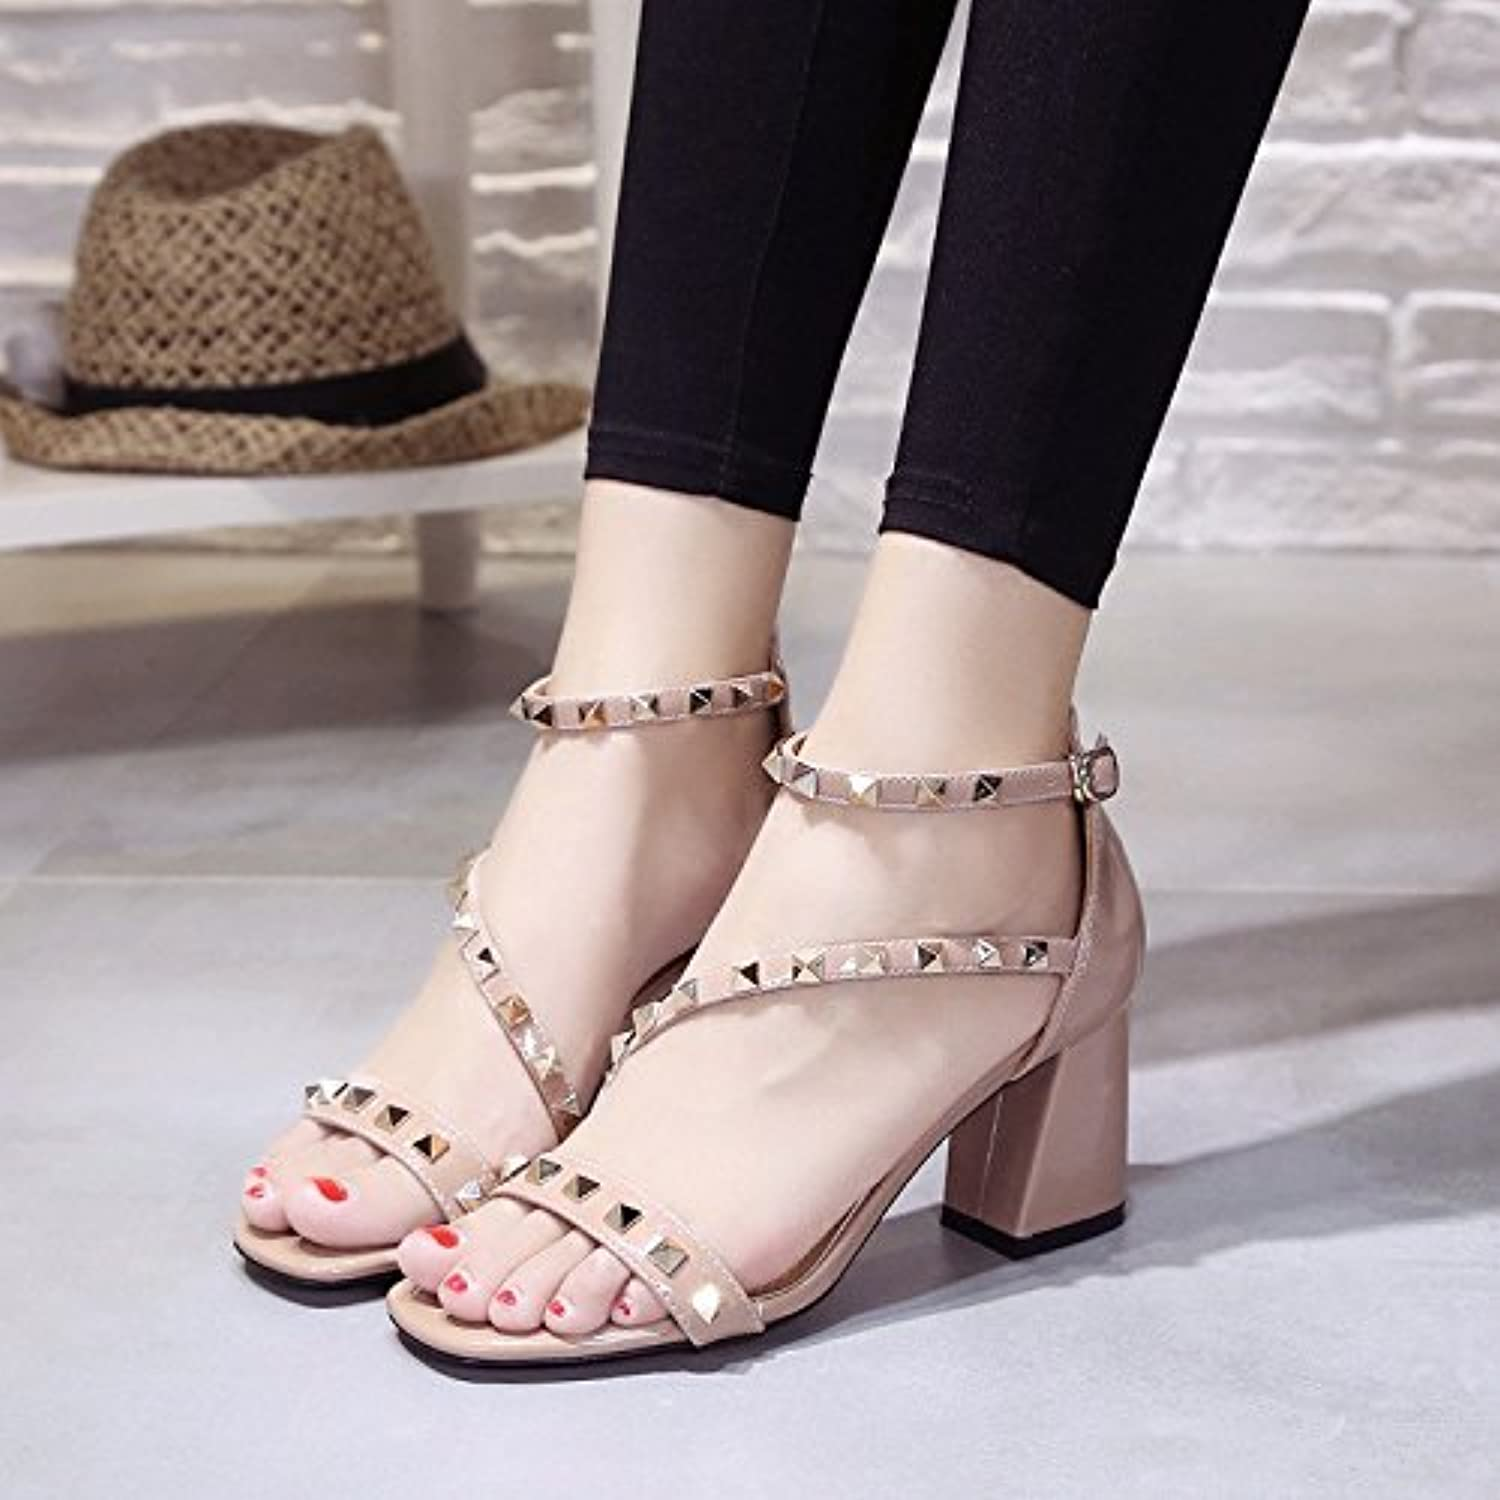 High Heel Sandals, Remaches, Tacon, Botones,Rosa,Eu37Cn38